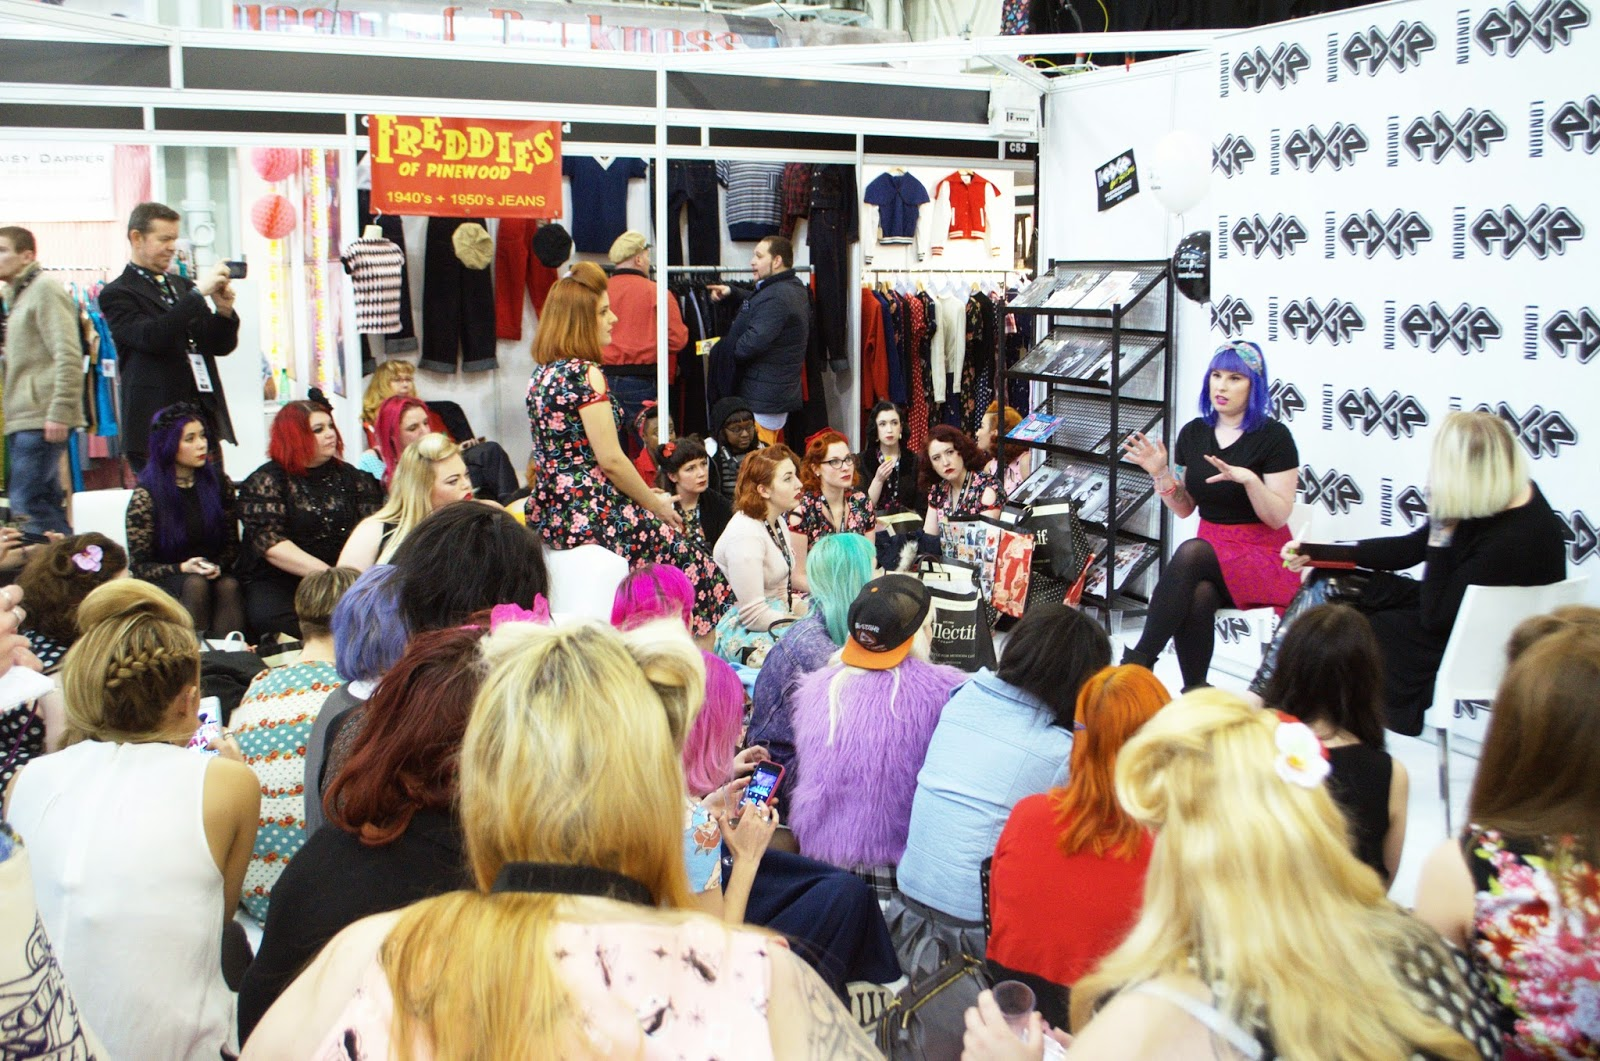 London Edge 2015 Blogger Meet Up